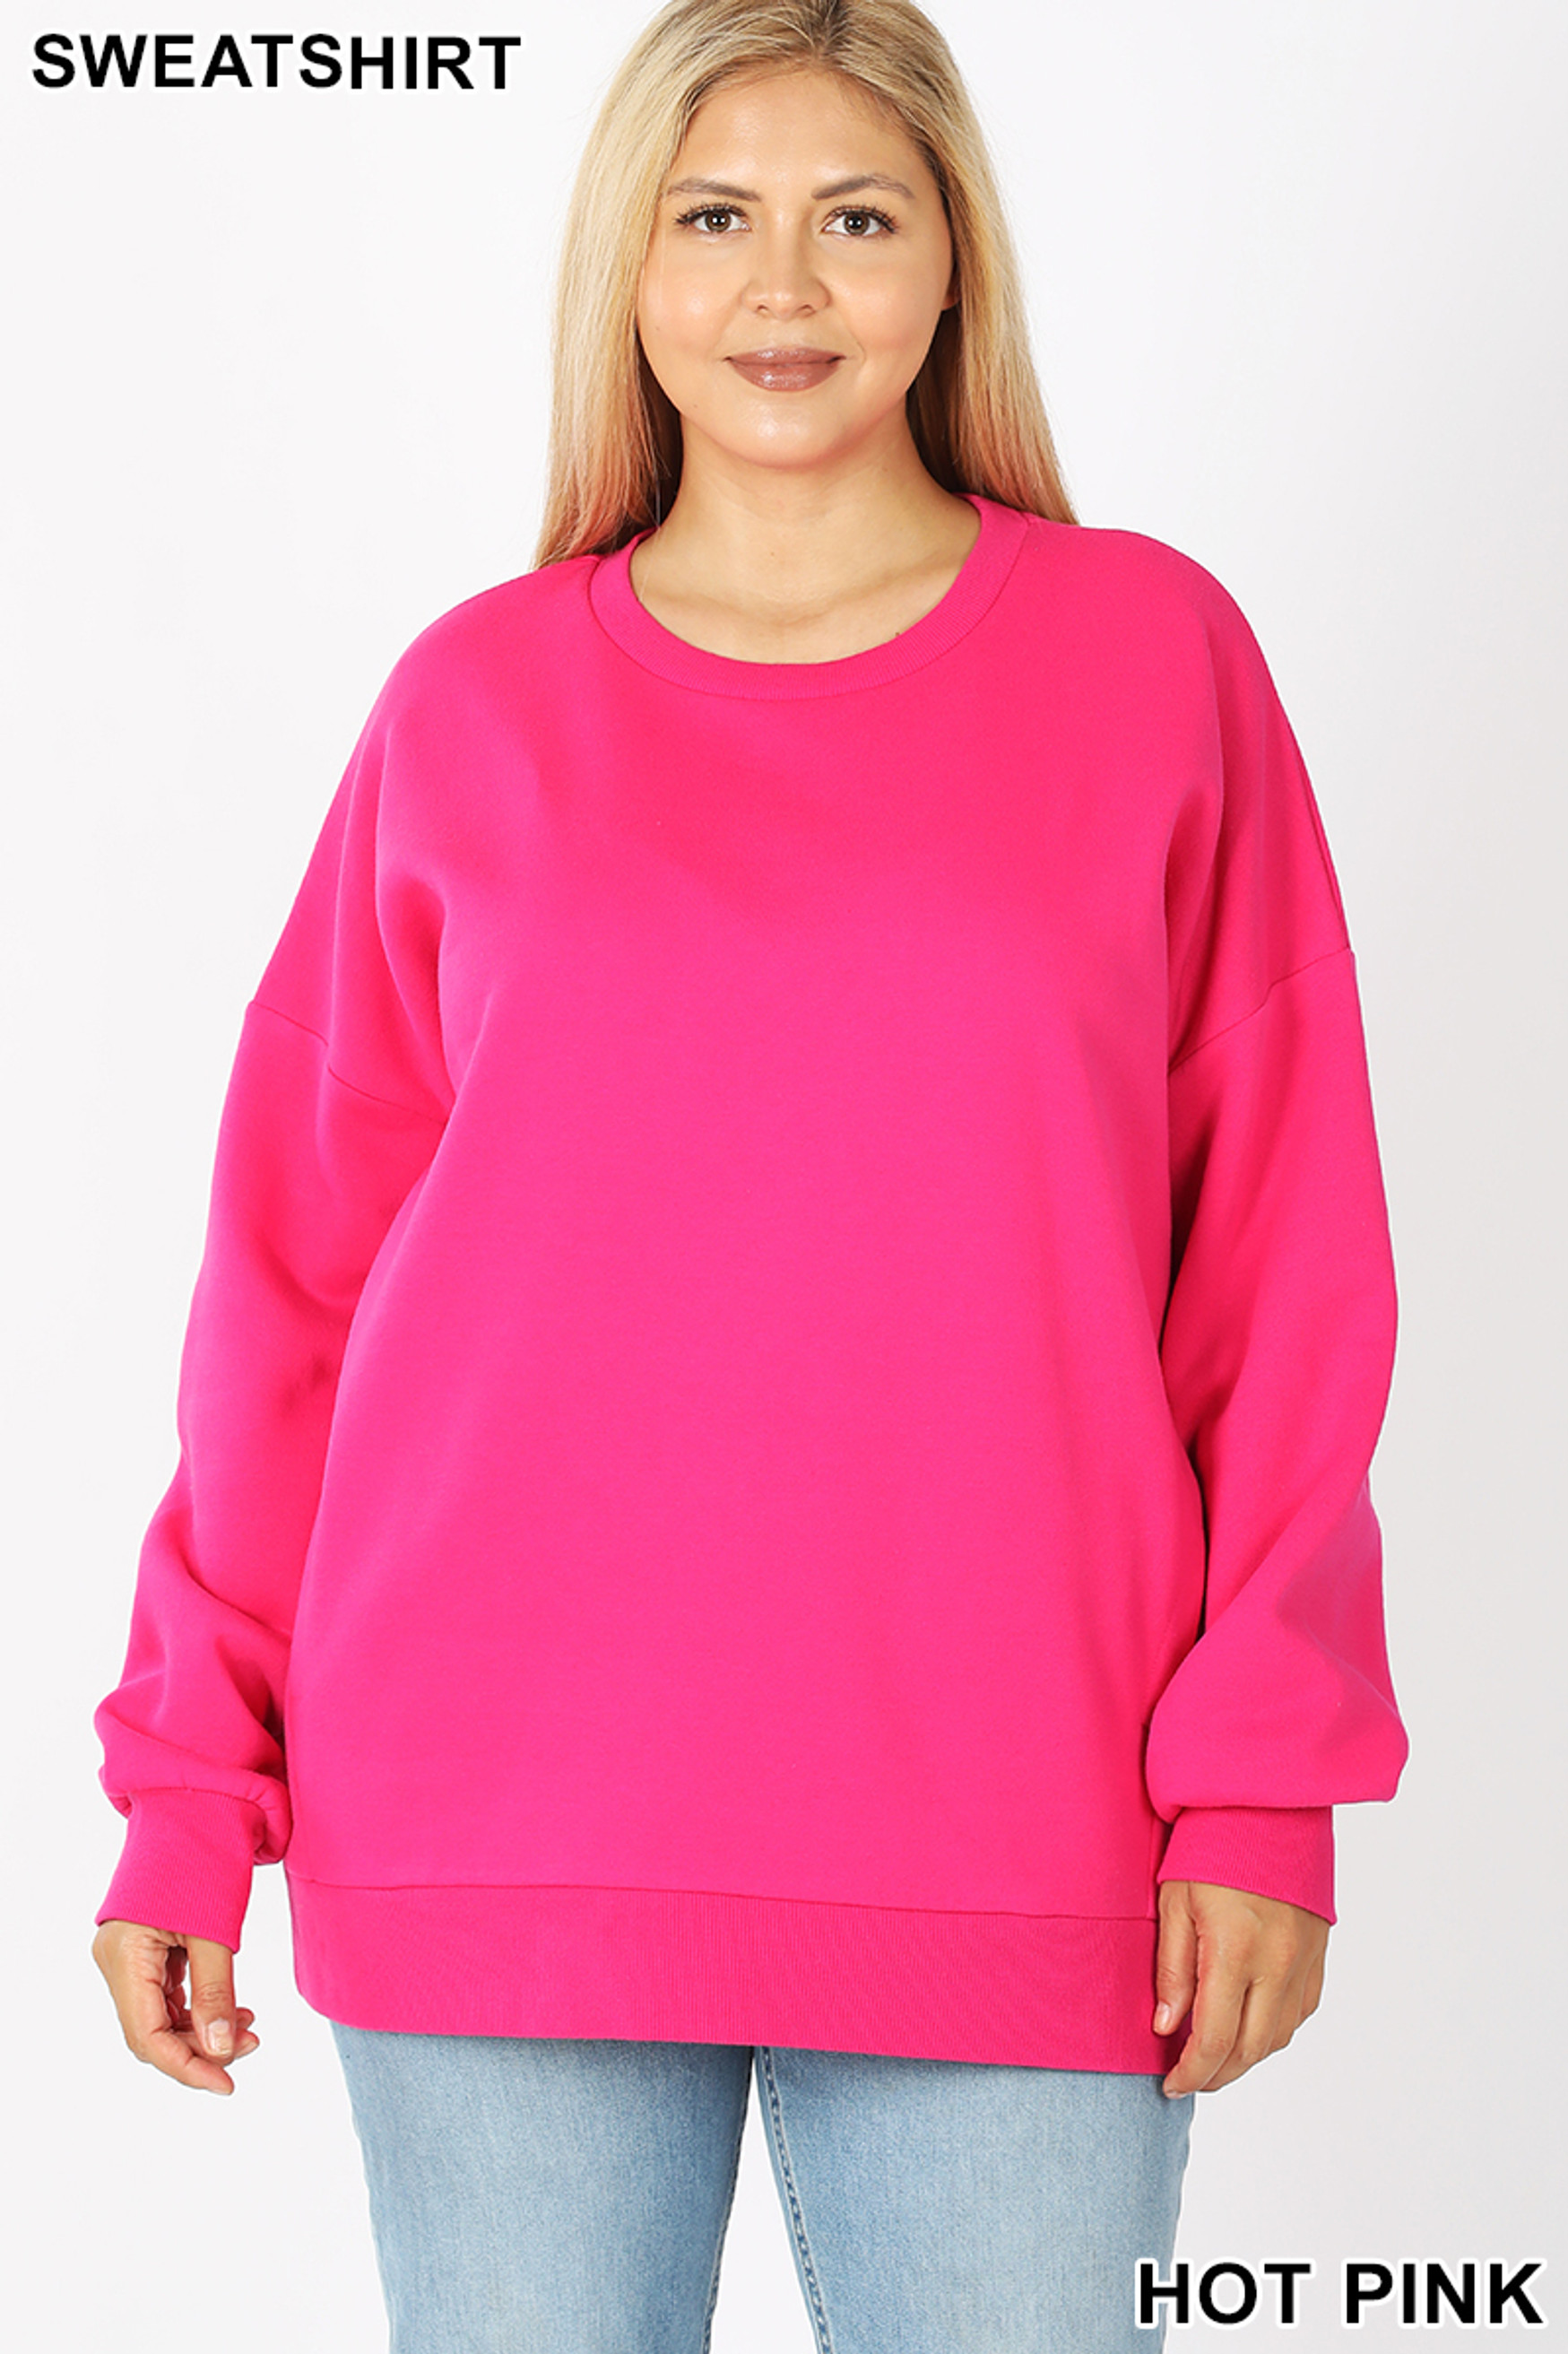 Front image of Hot Pink Cotton Round Crew Neck Plus Size Sweatshirt with Side Pockets